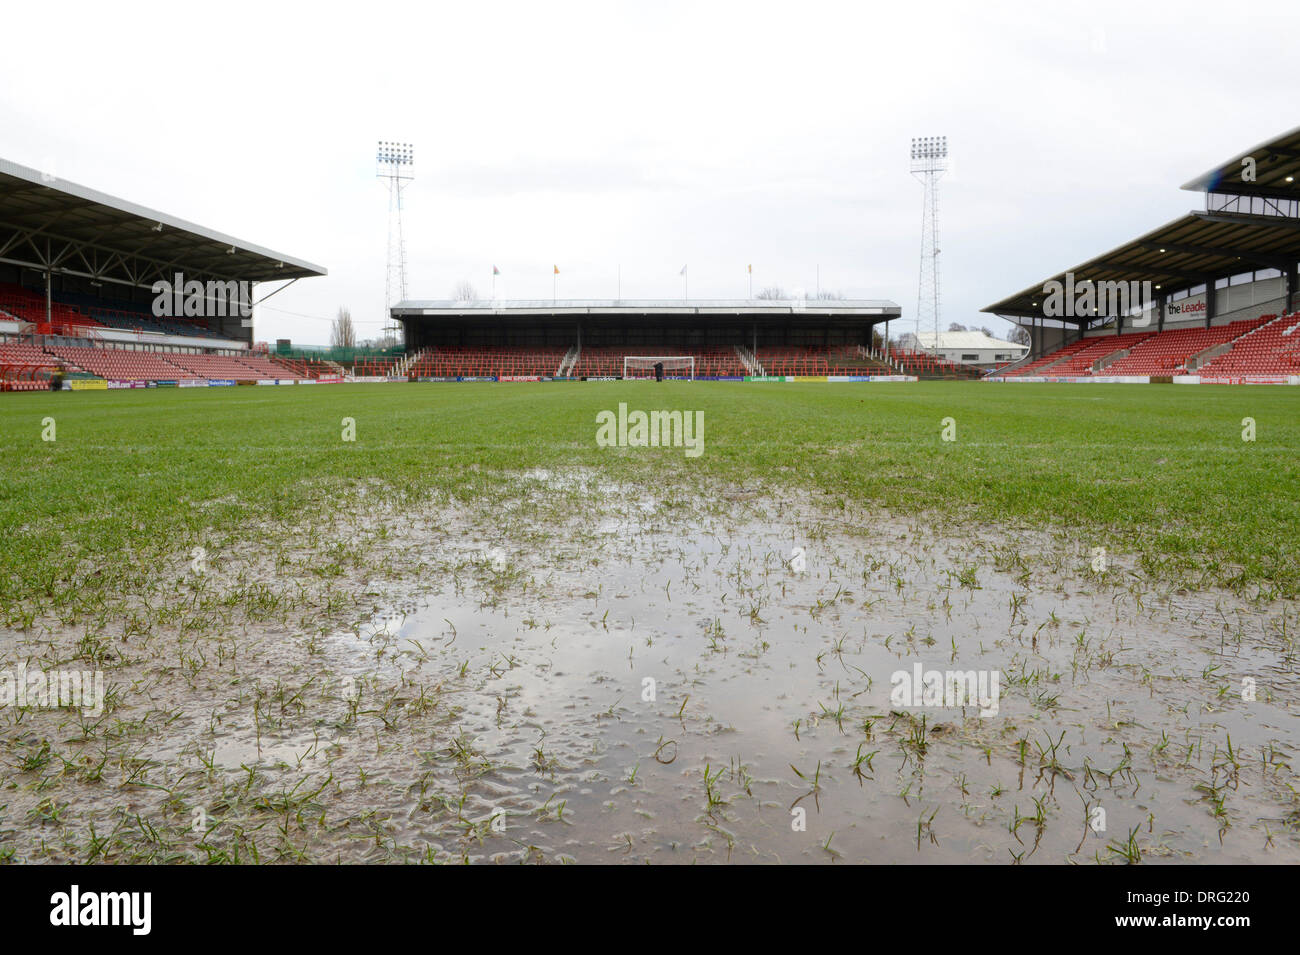 Wrexham, Wales, UK. 25th January 2014. The Skrill Conference Premier fixture between Wrexham and Grimsby Town on Saturday 25th January 2014 was postponed due to a waterlogged pitch. Credit:  Russell Hart/Alamy Live News - Stock Image